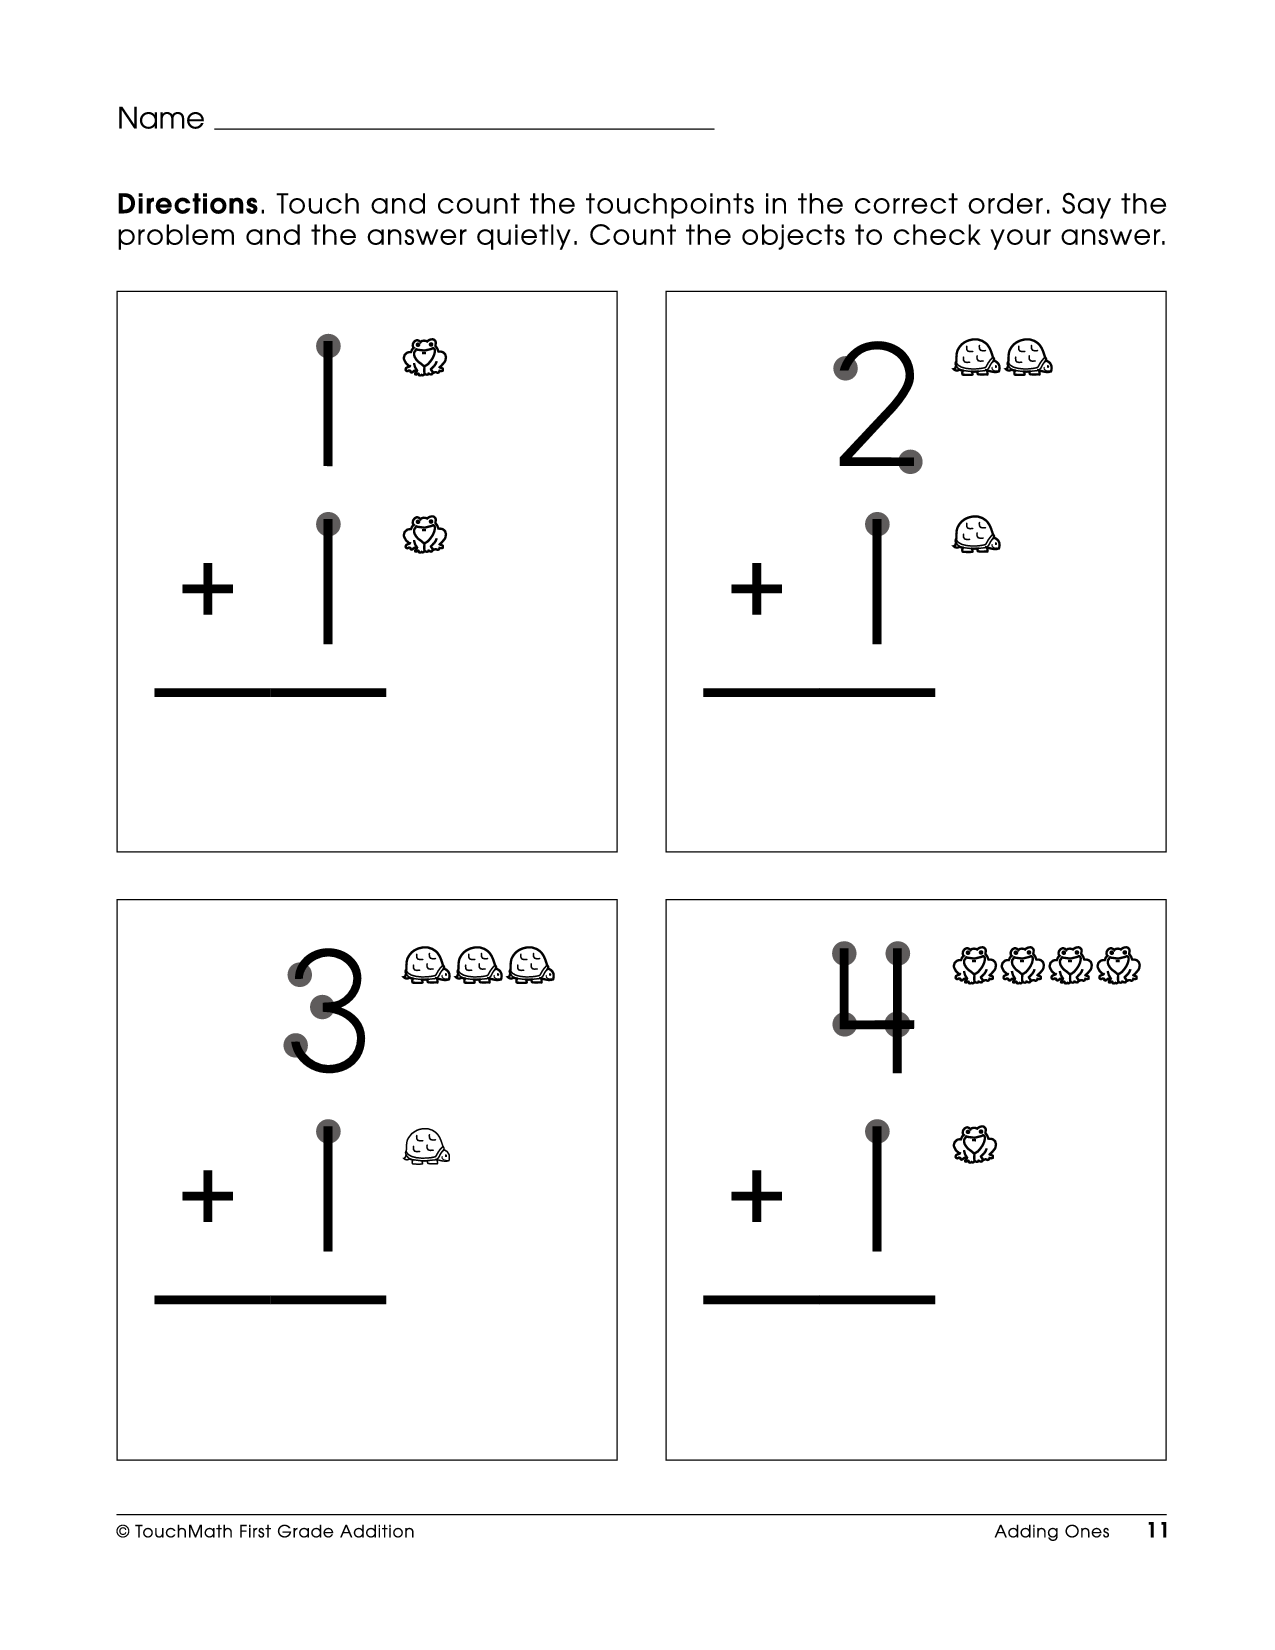 worksheet Touchmath Worksheets 78 best images about touch math on pinterest count worksheets and problems